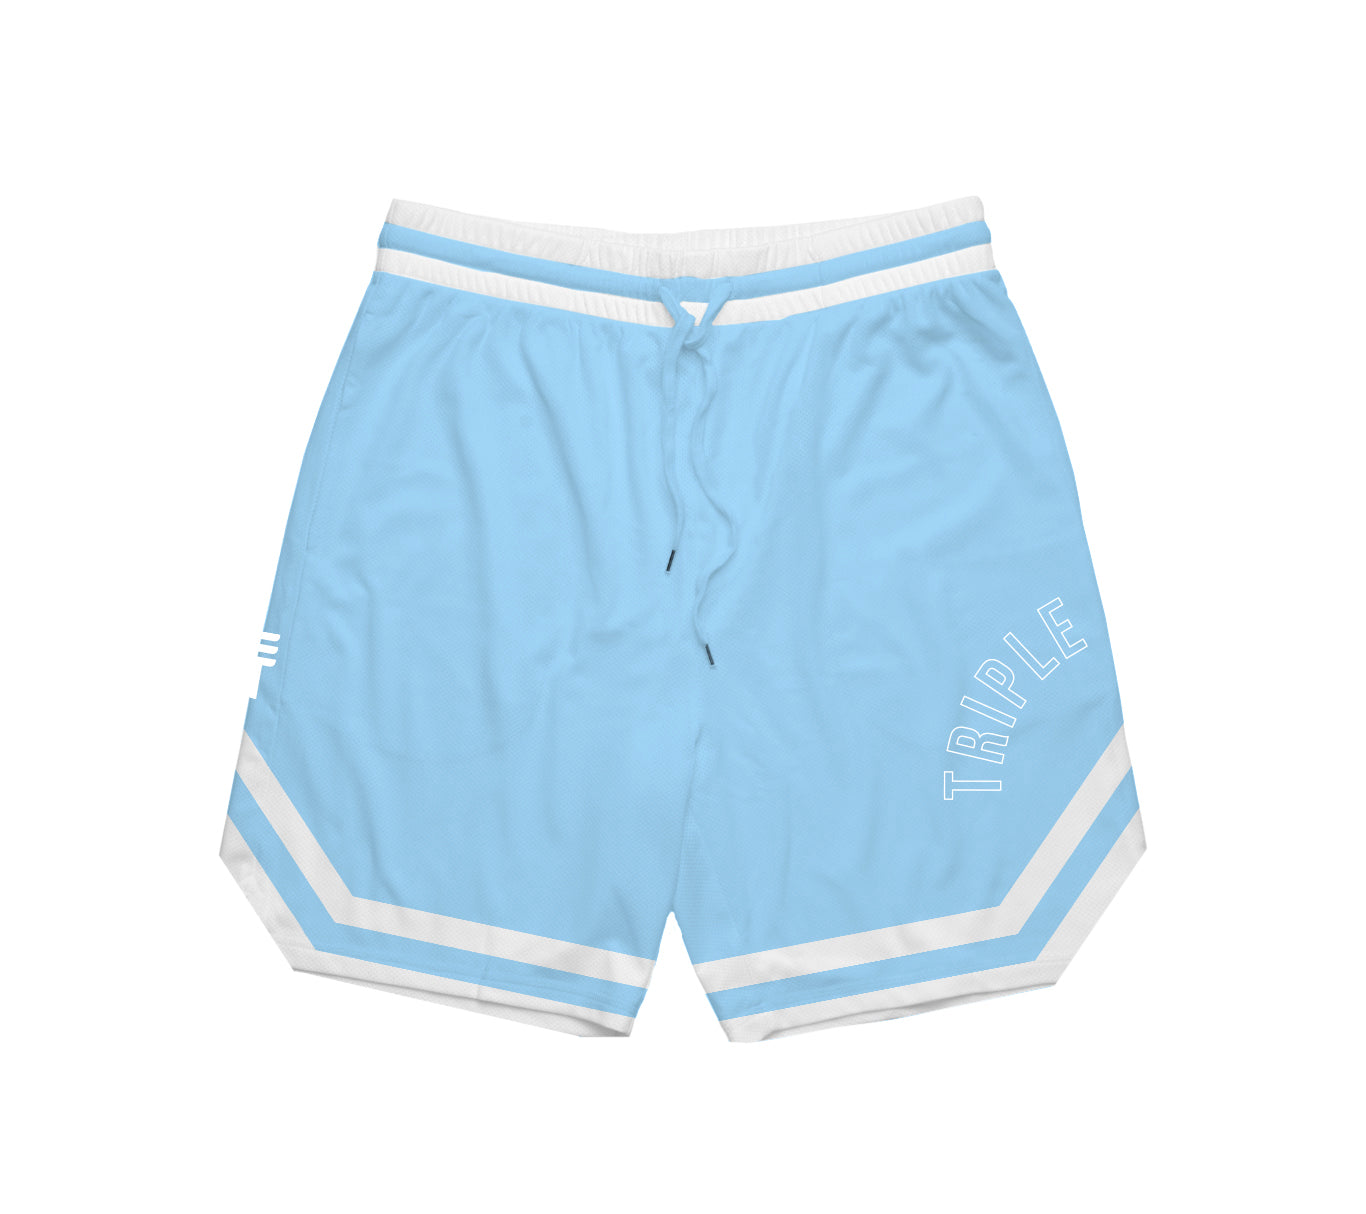 TRIPLE THREAT OG SHORTS - LIGHT BLUE